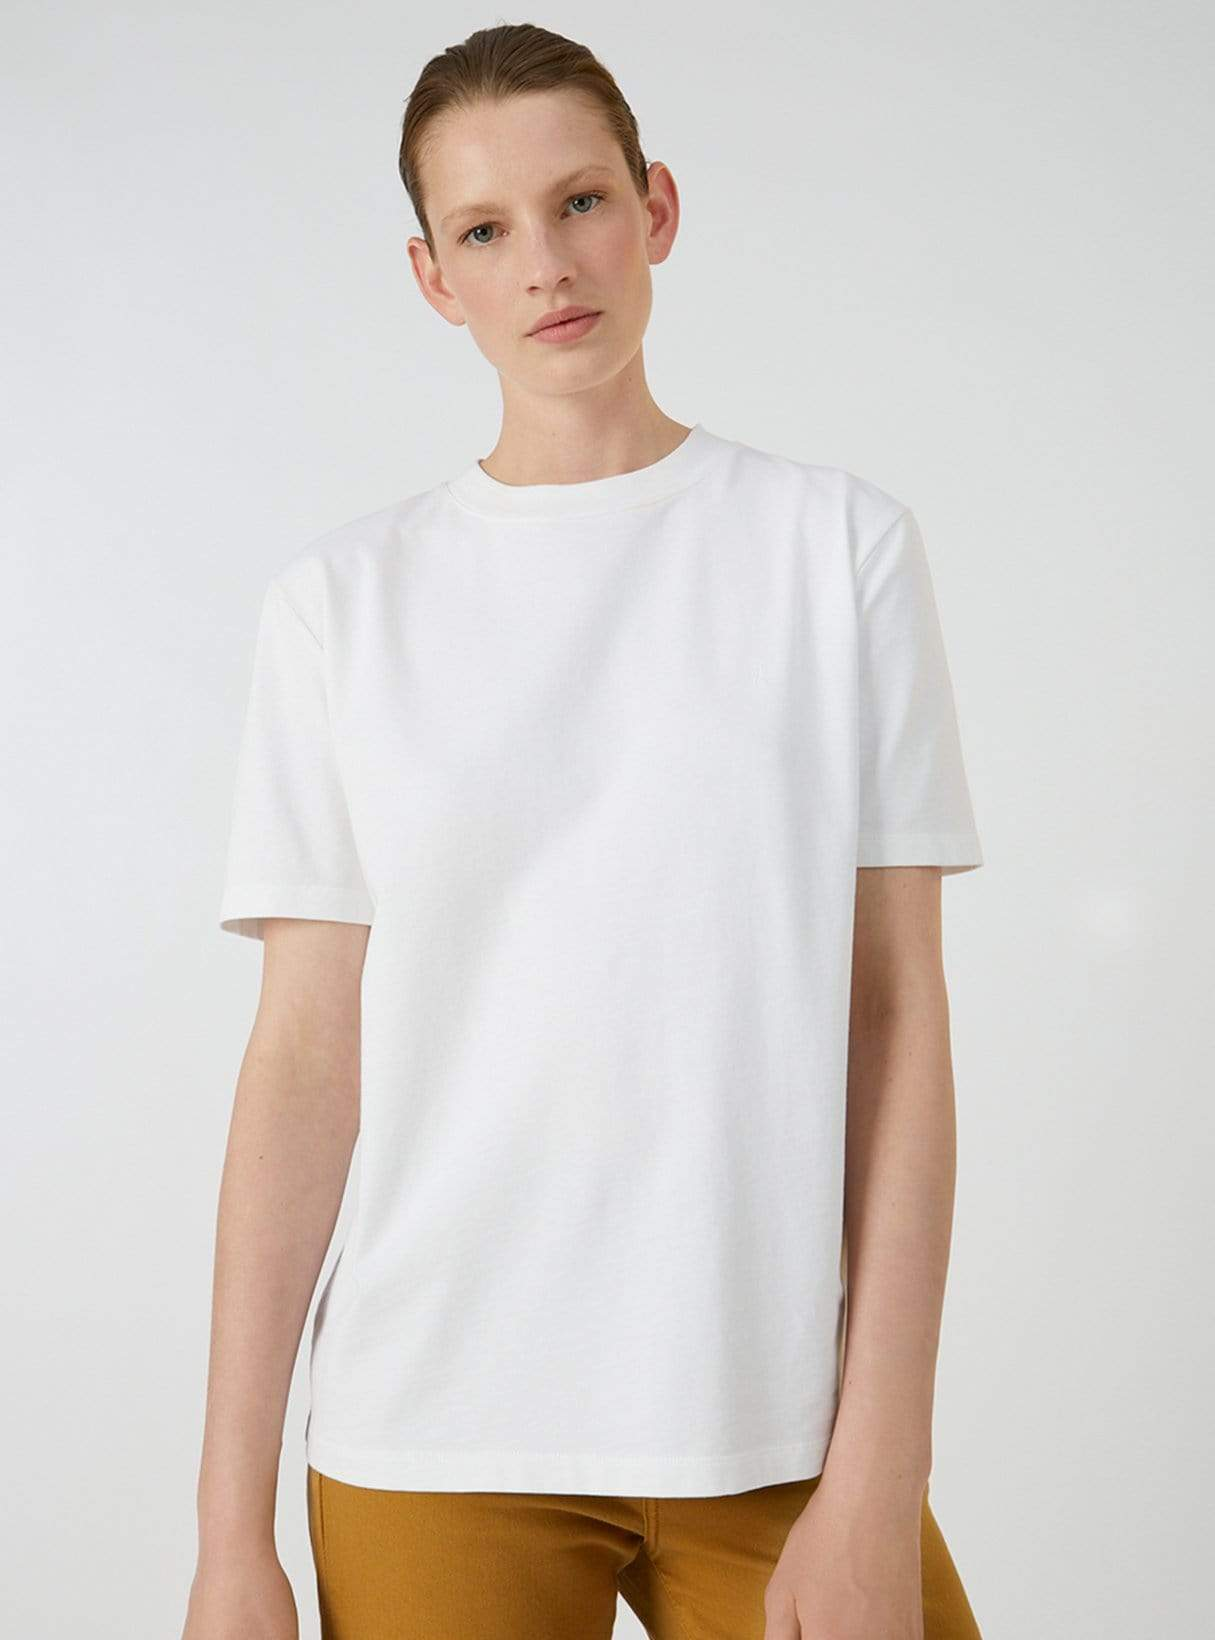 Taraa - t-shirt - white